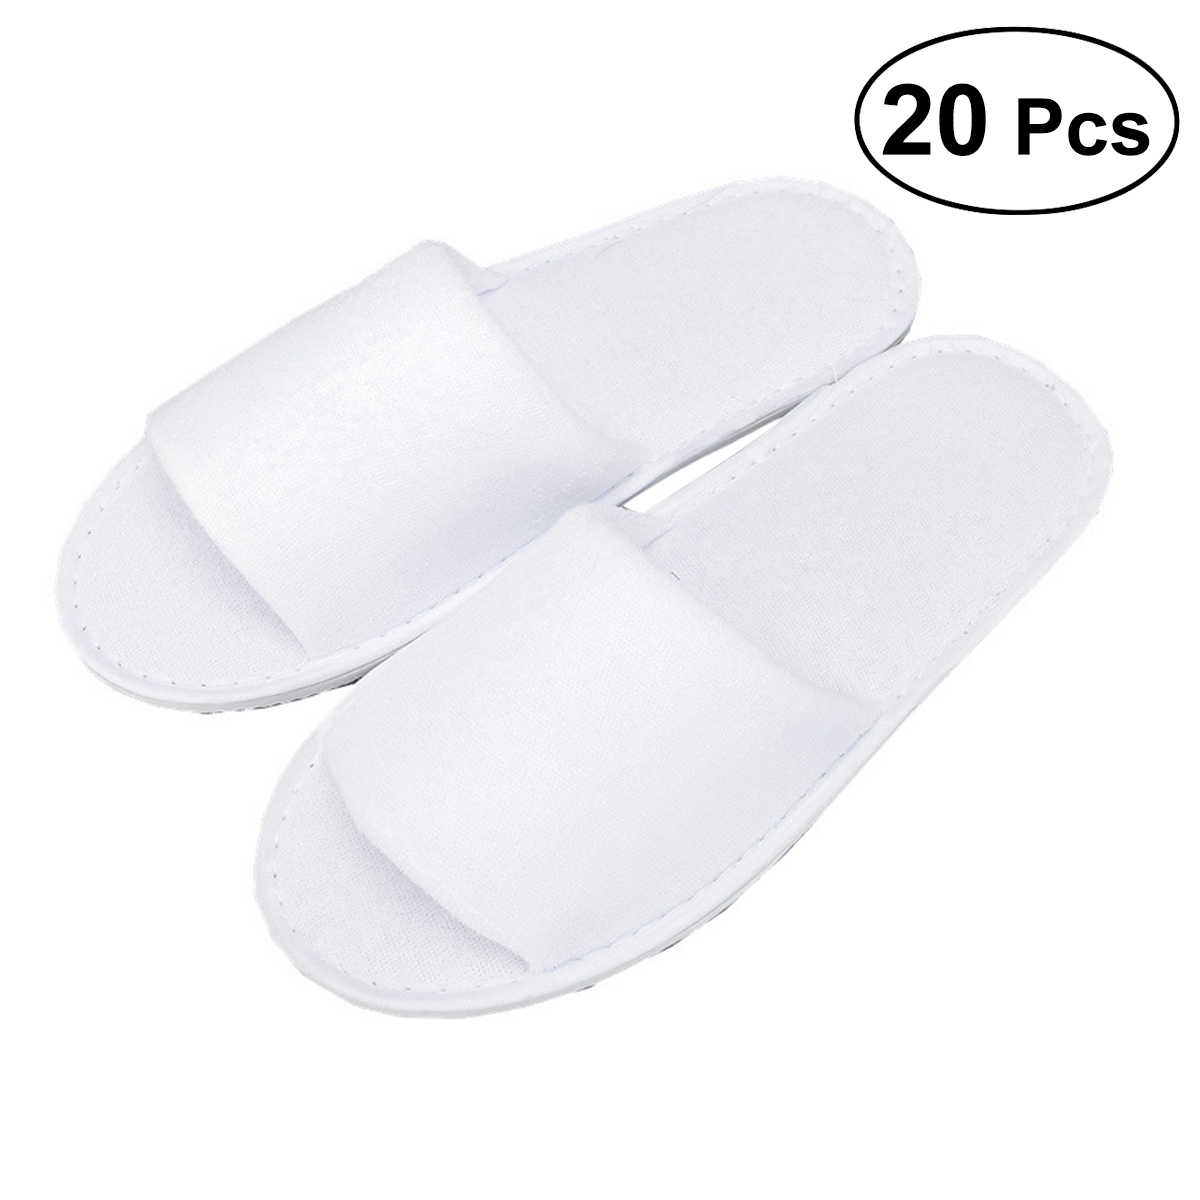 04d11869816 20 Pair Disposable Slippers Open Toe Non-Slip Home Hotel Spa Party Guest  Indoor Slippers